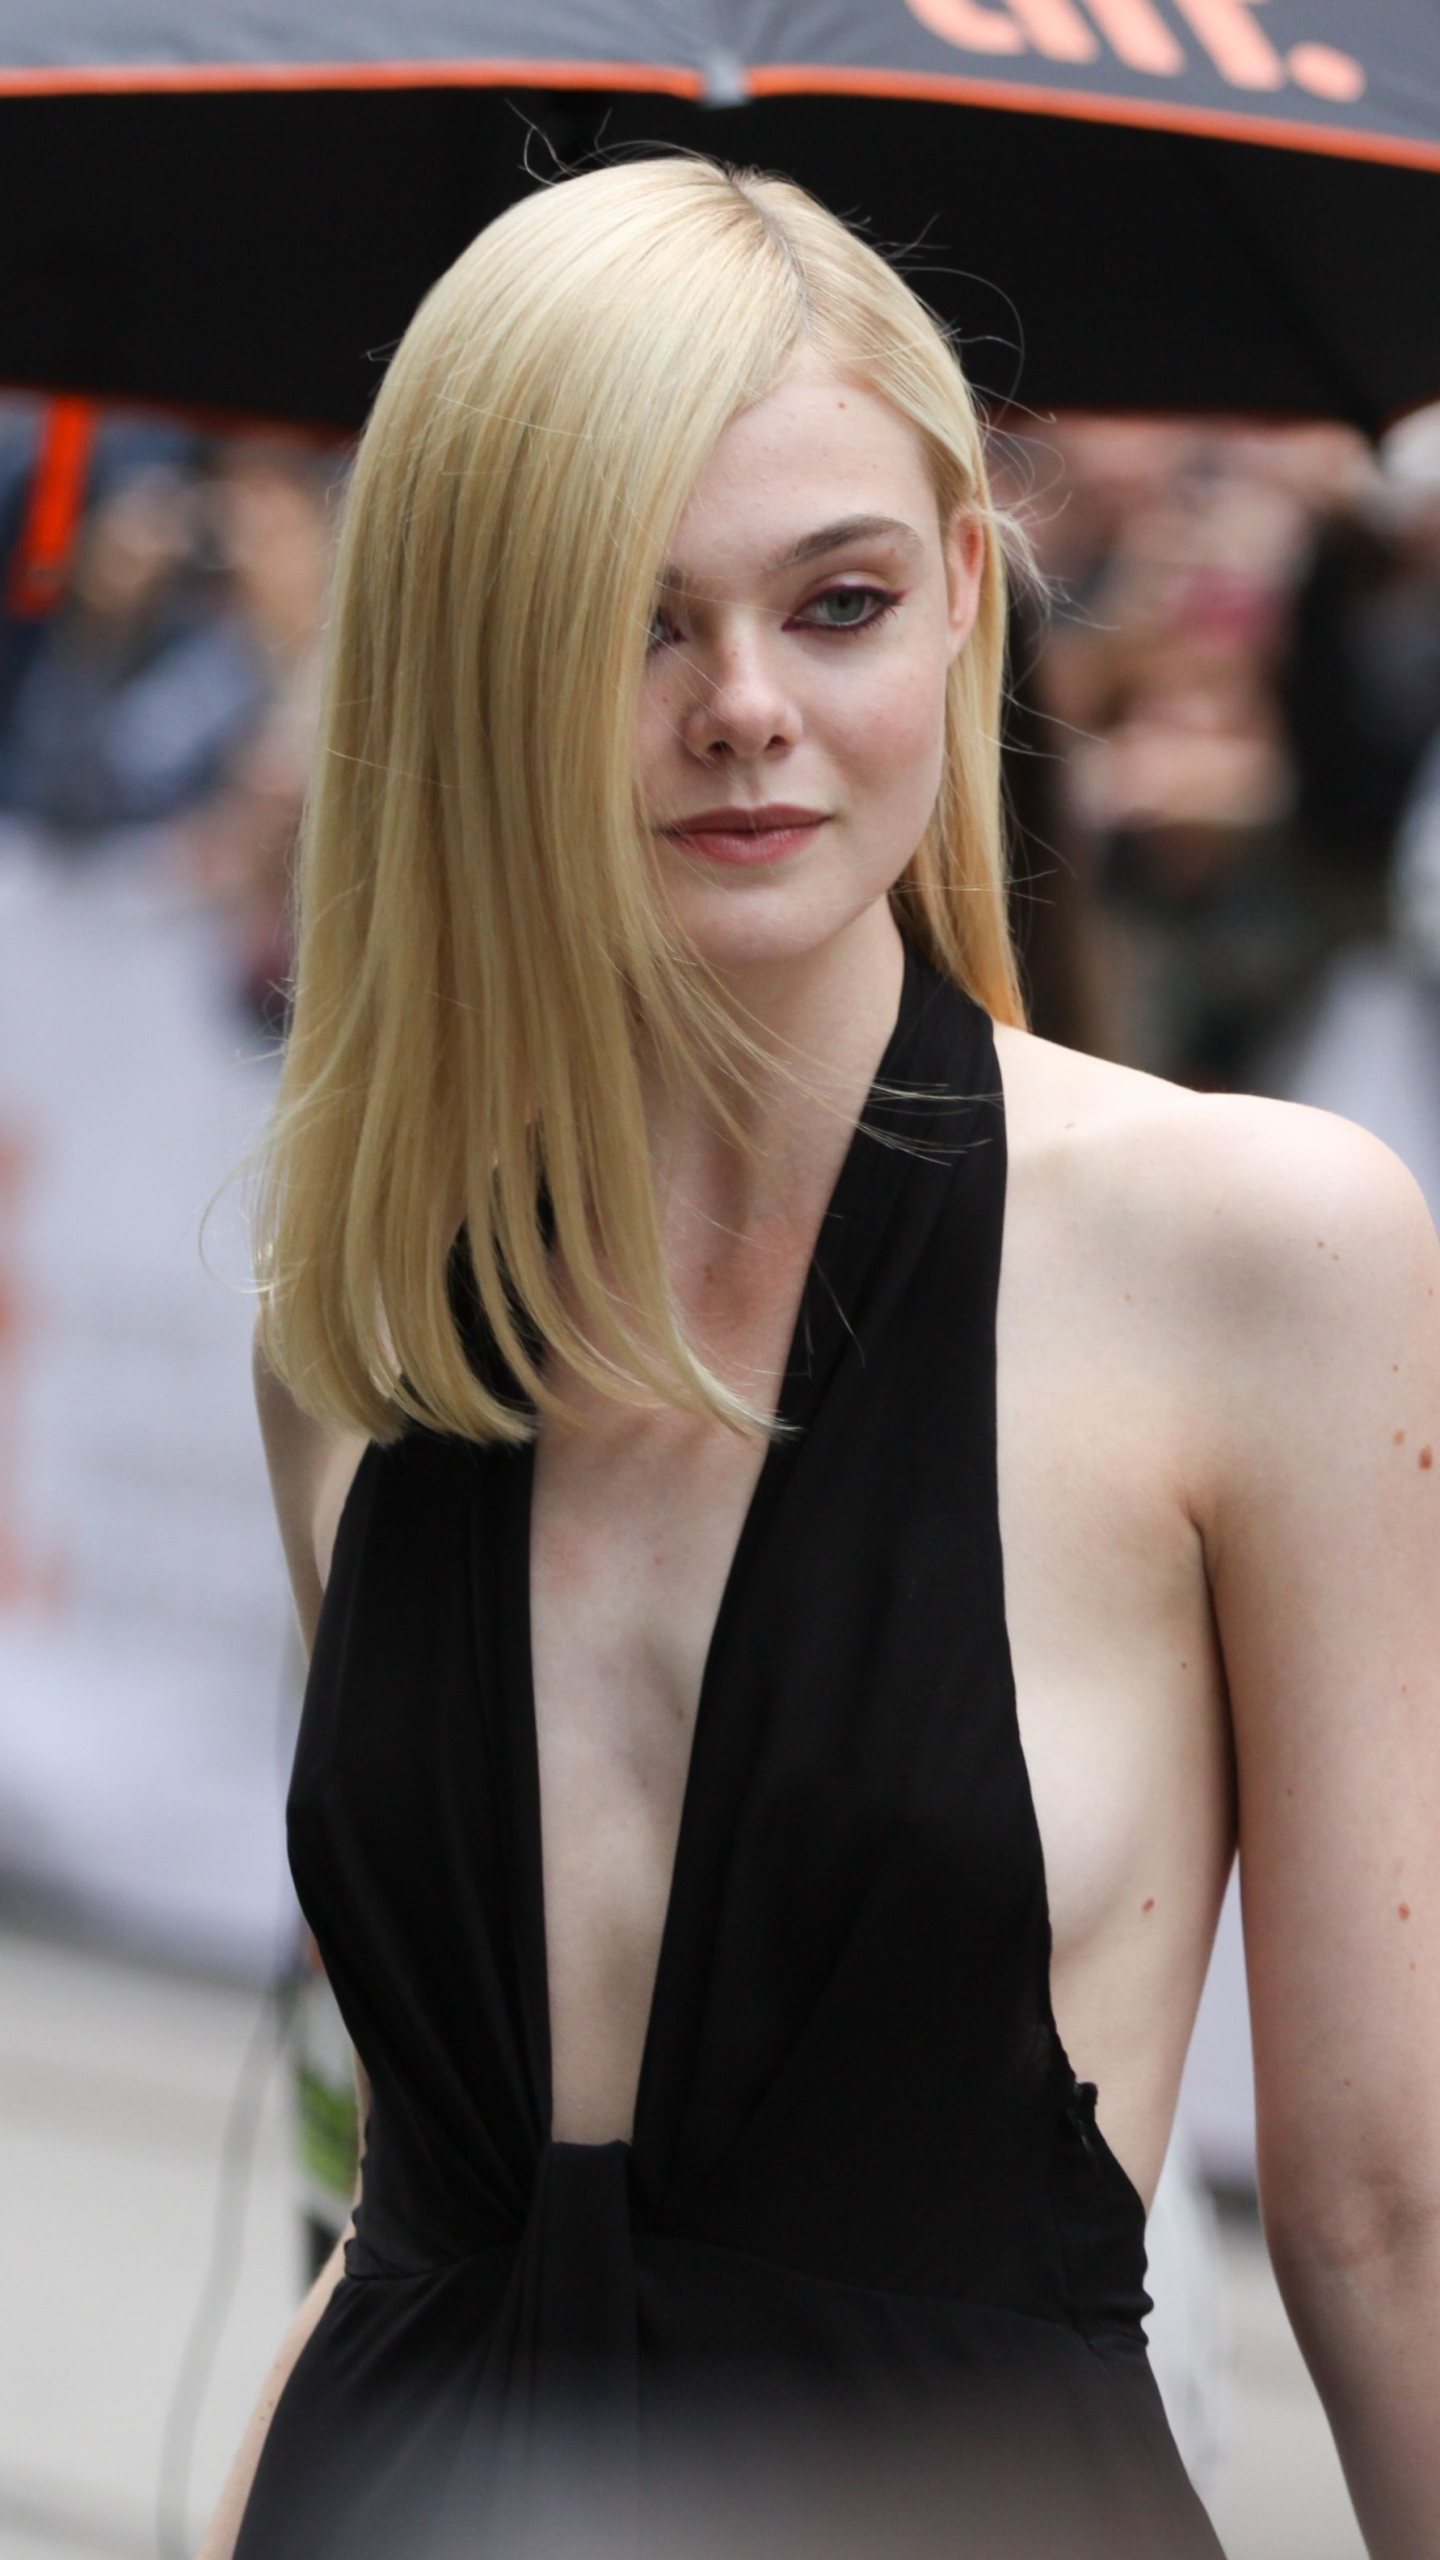 Iphone 5 celebrity elle fanning wallpaper id 622536